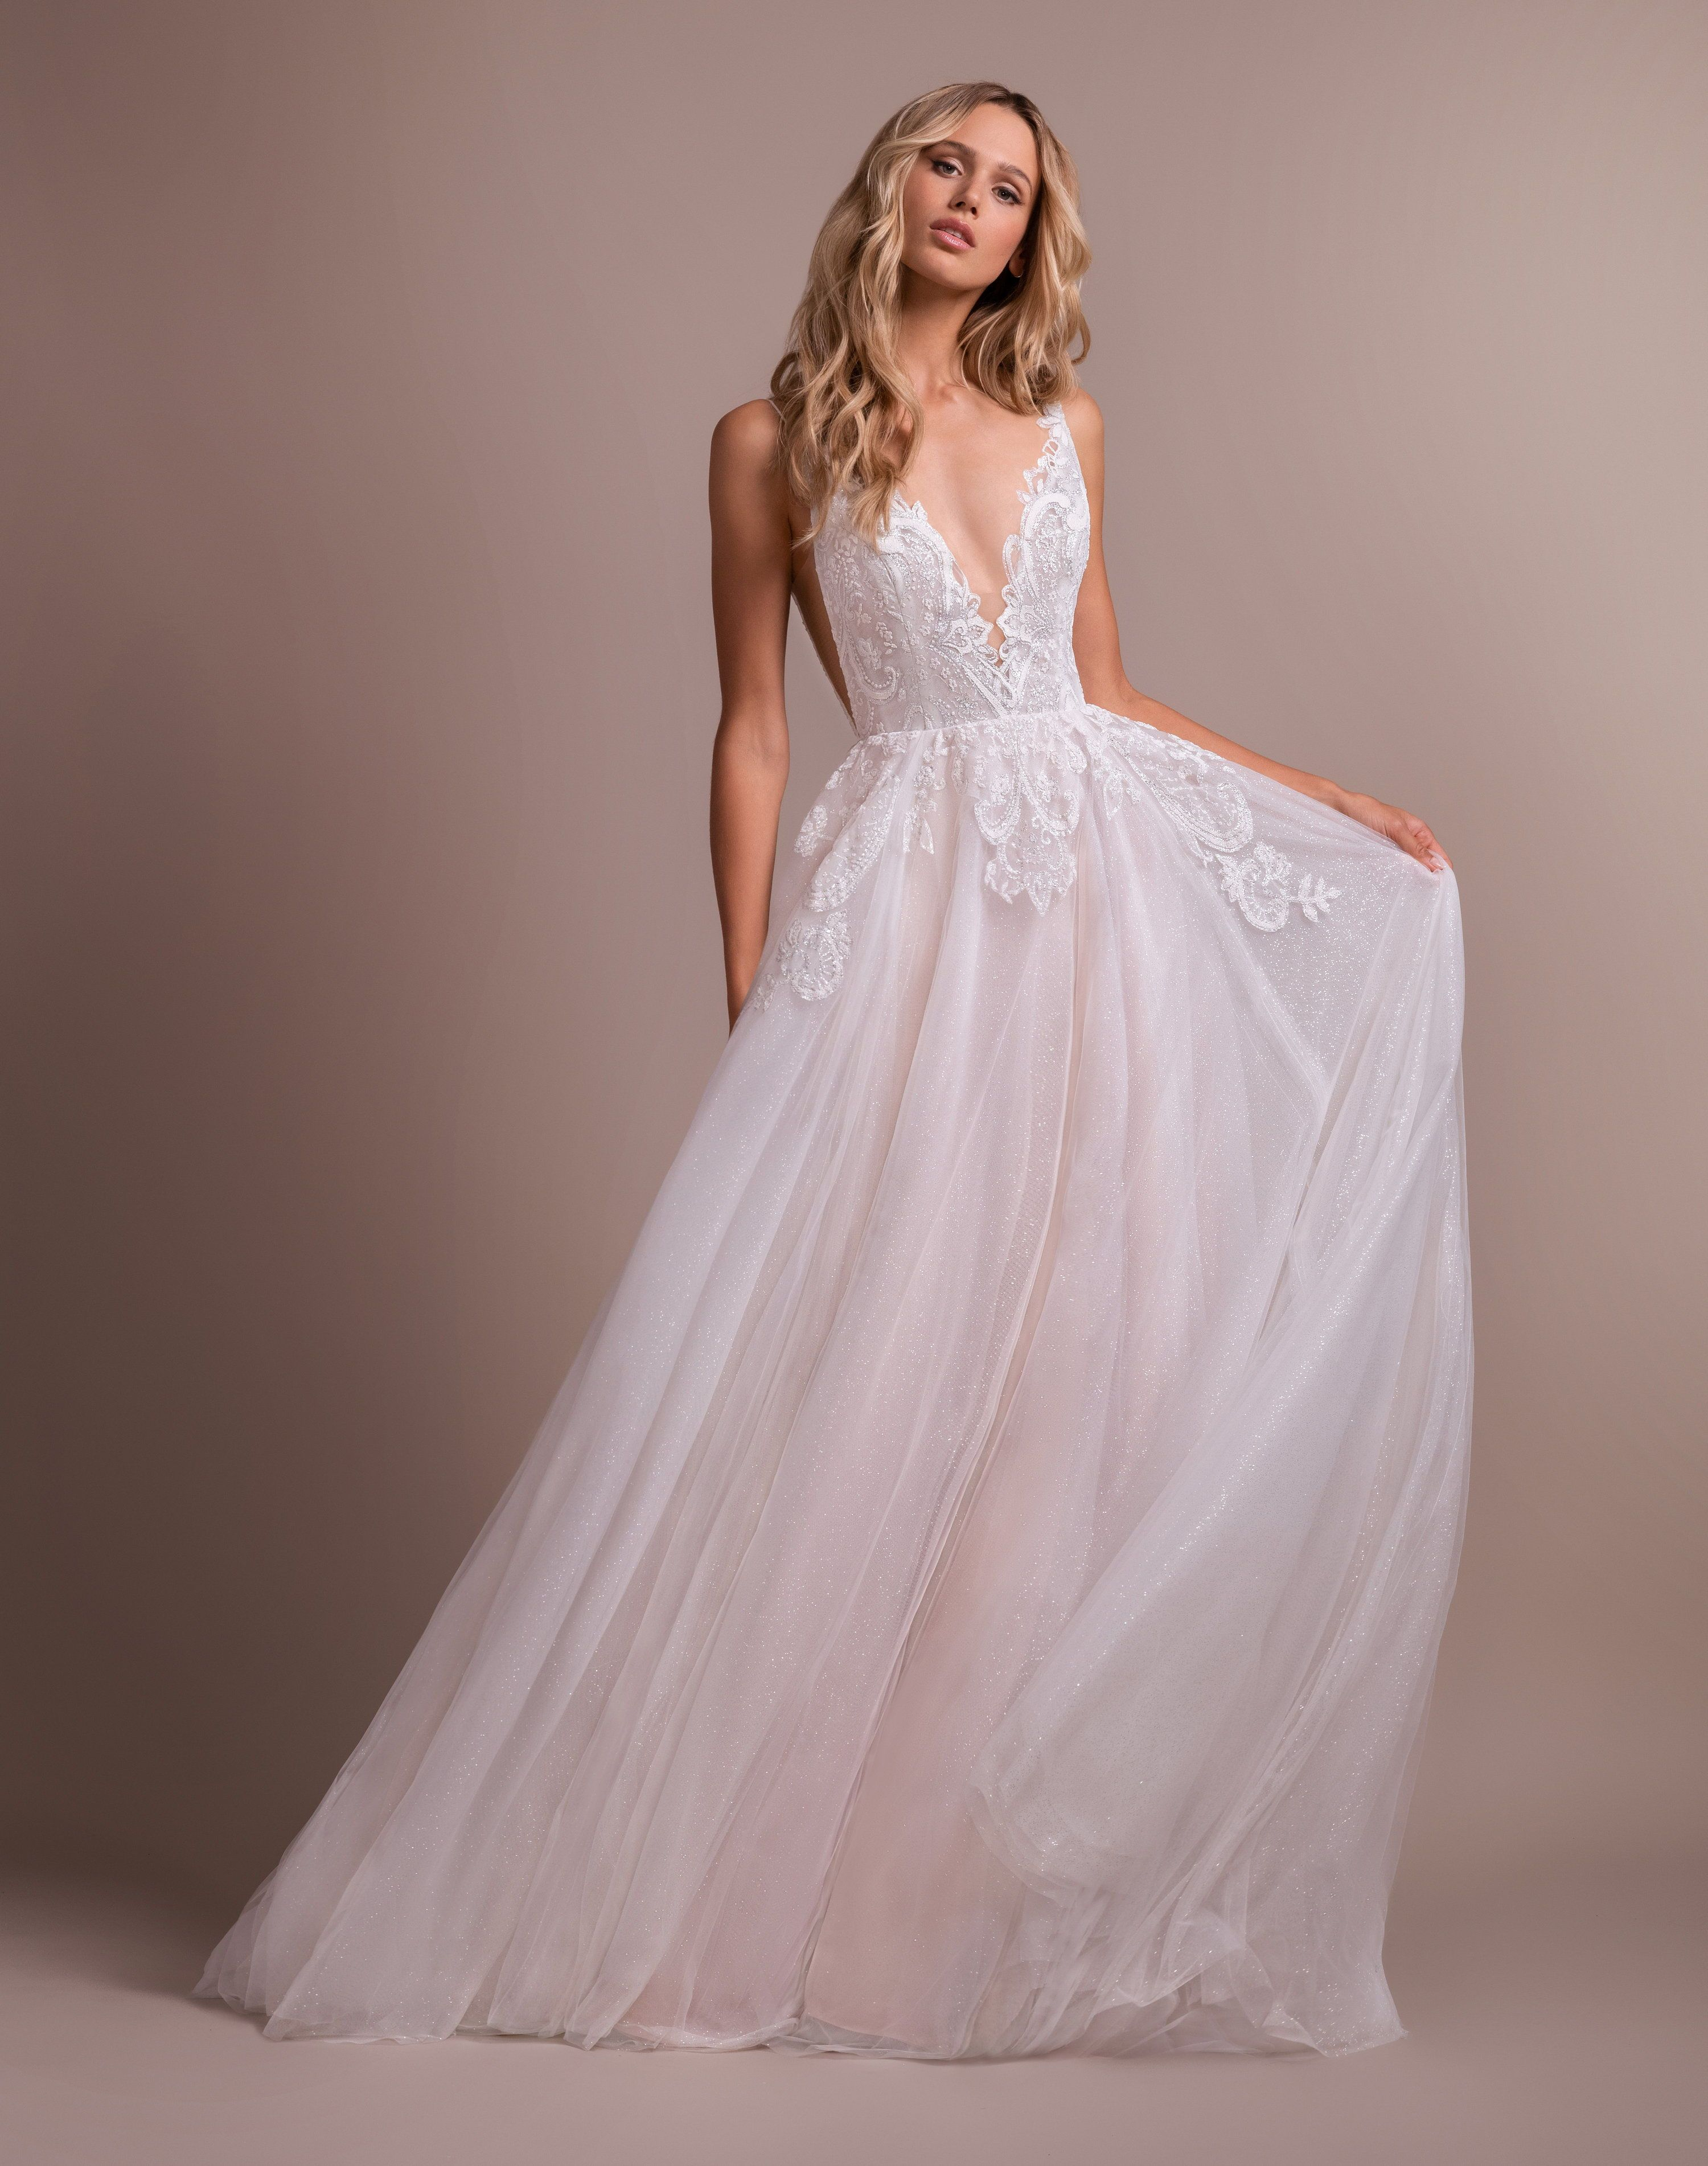 78cdee7fa0 Nash by Hayley Paige | Spring 2019 Collection | Hayley Paige Wedding Dresses  2019 | Hayley Paige bridal gown - Ivory labyrinth caviar A-line gown, ...